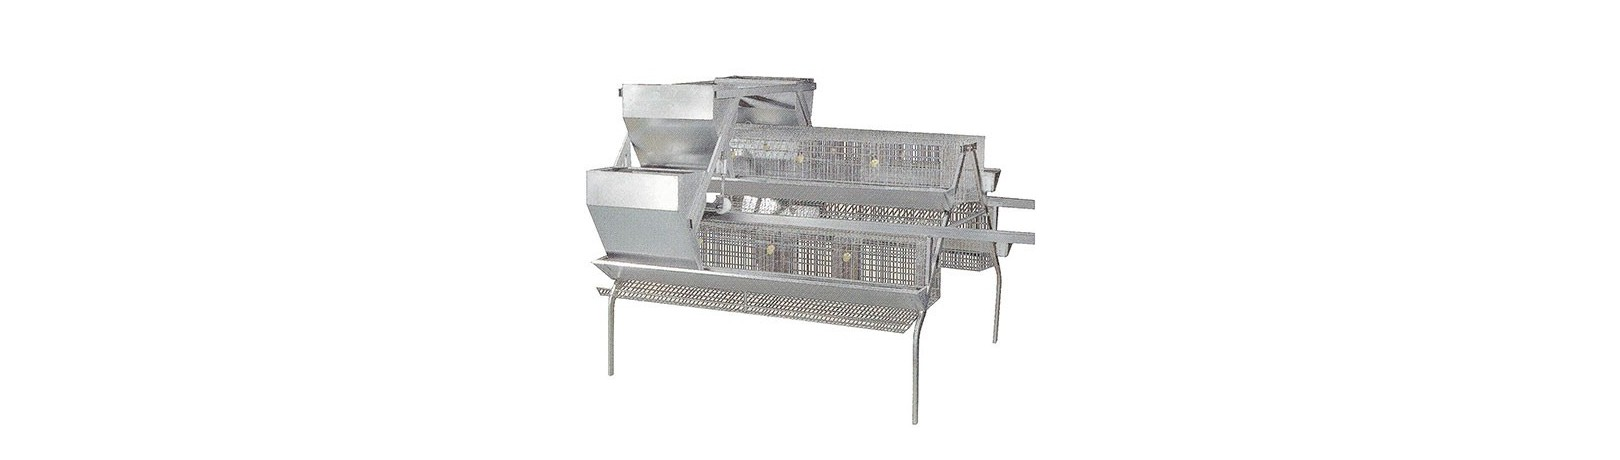 Cages for Industrial Poultry